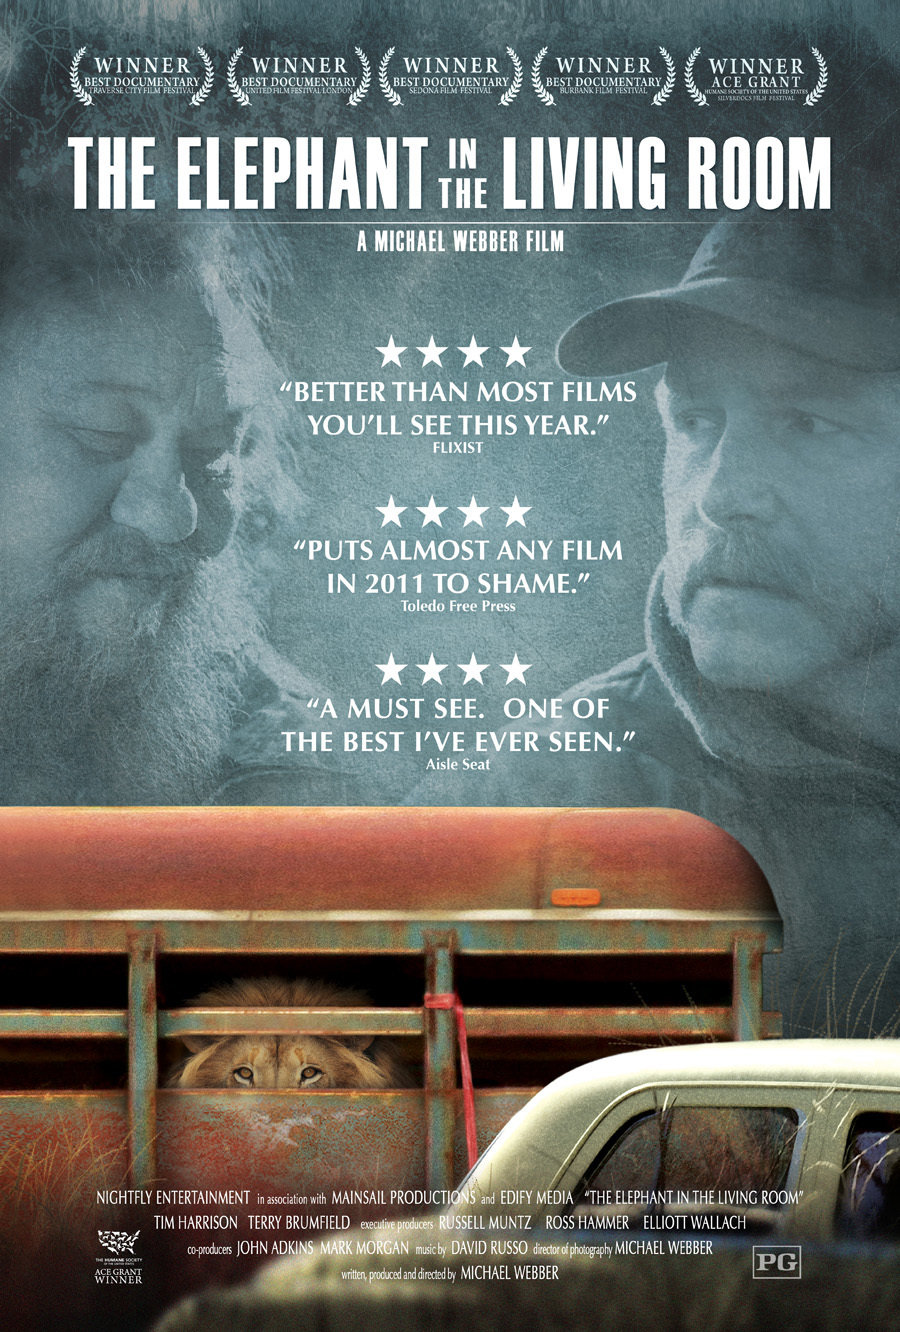 the elephant in the living room 2010 imdb - The Elephant In The Living Room